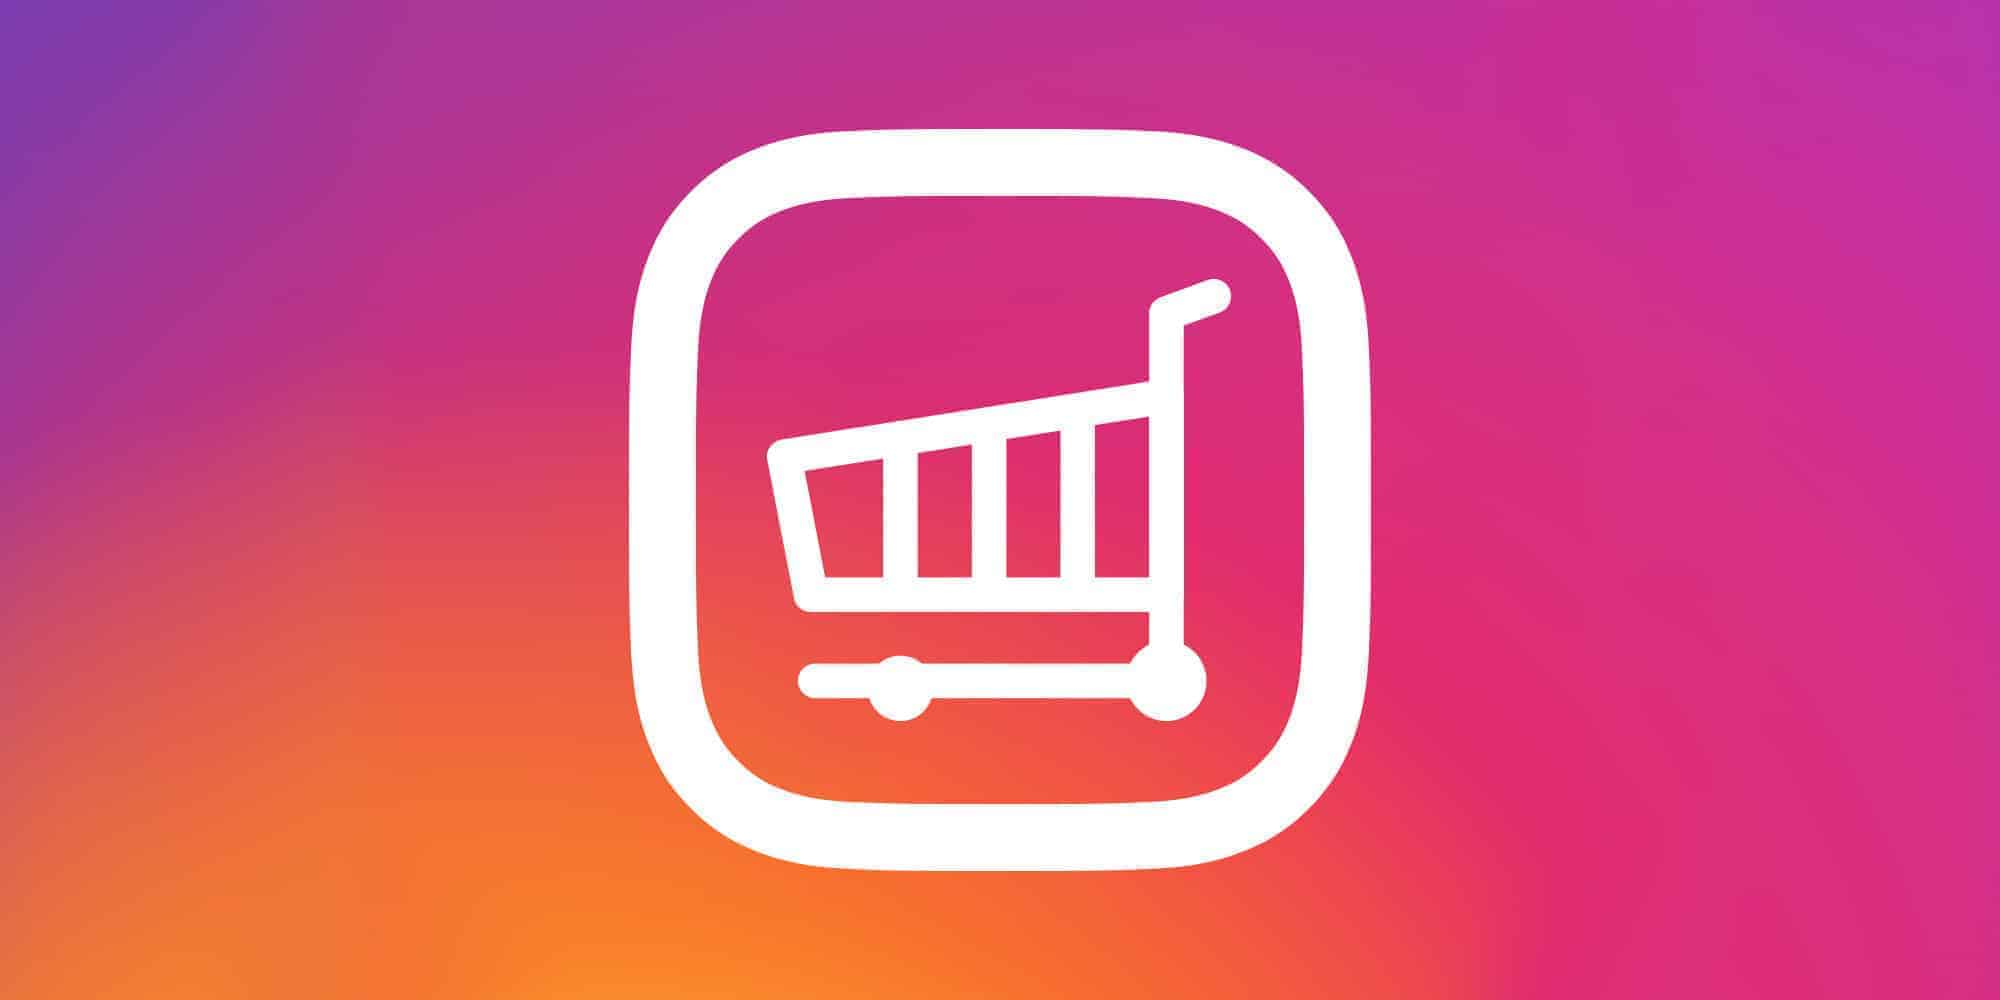 What do you have to do to start selling on Instagram Direct?